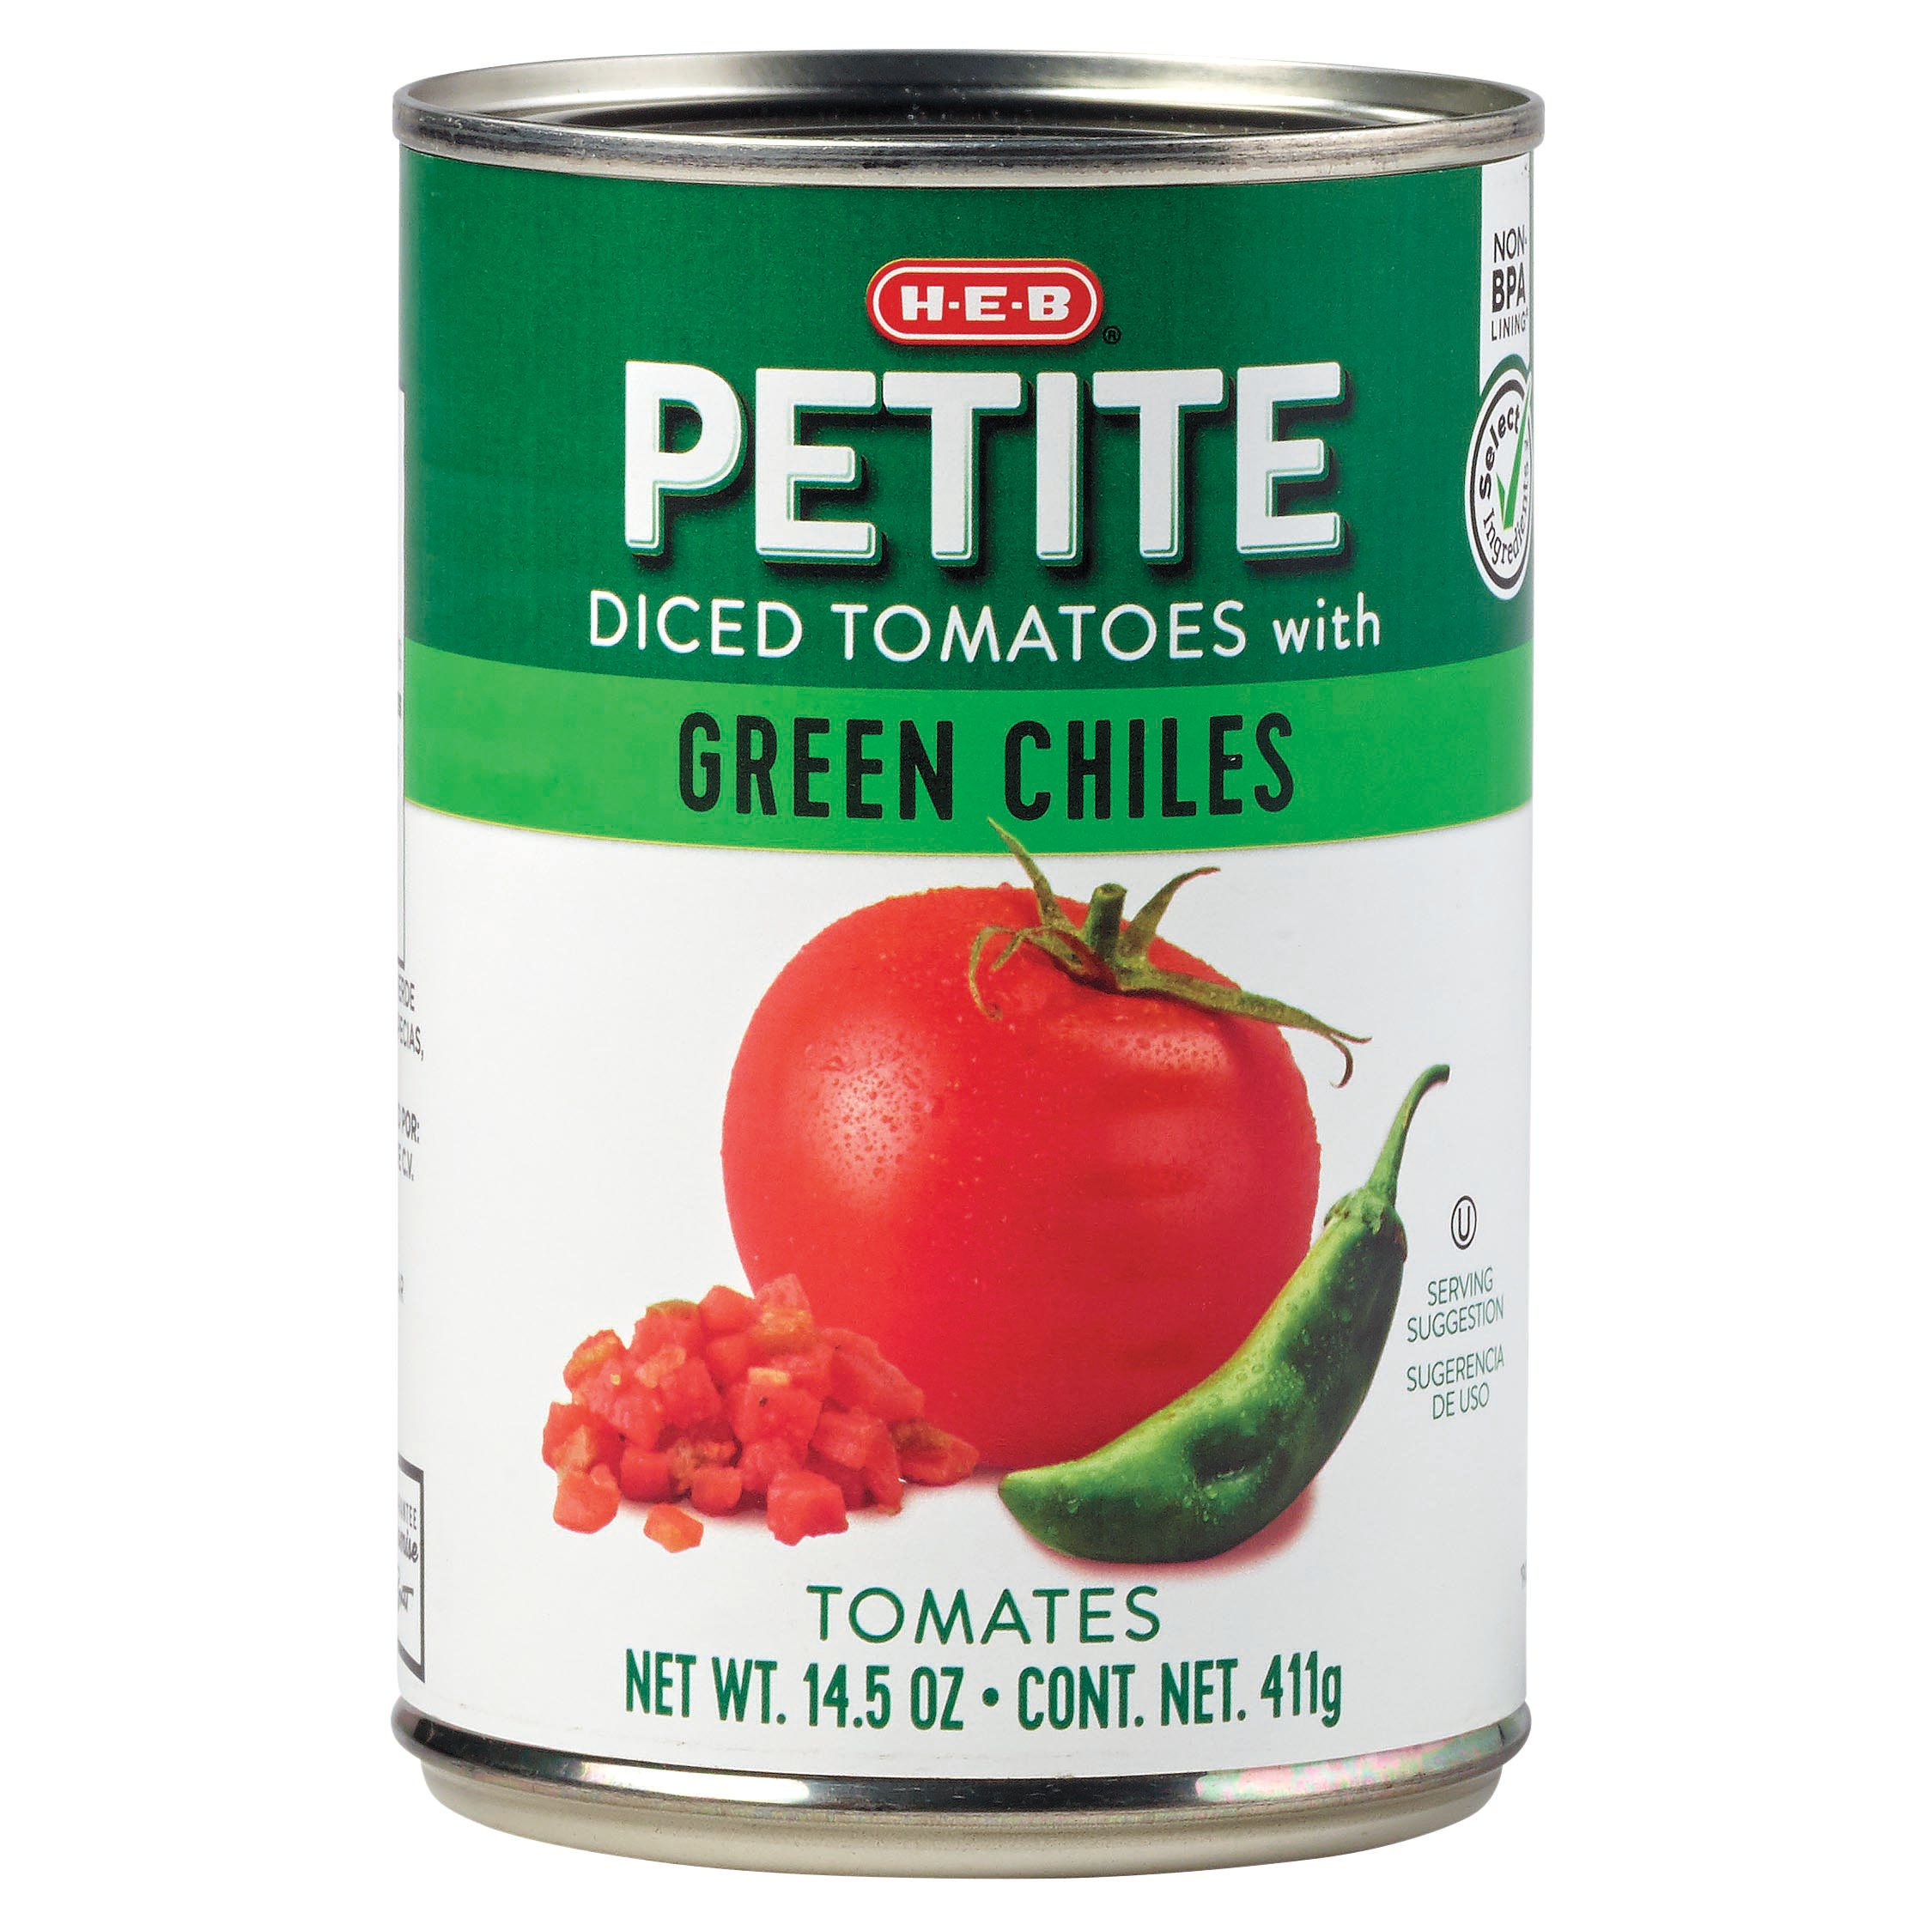 H E B Diced Tomatoes With Green Chilies Shop Vegetables At H E B